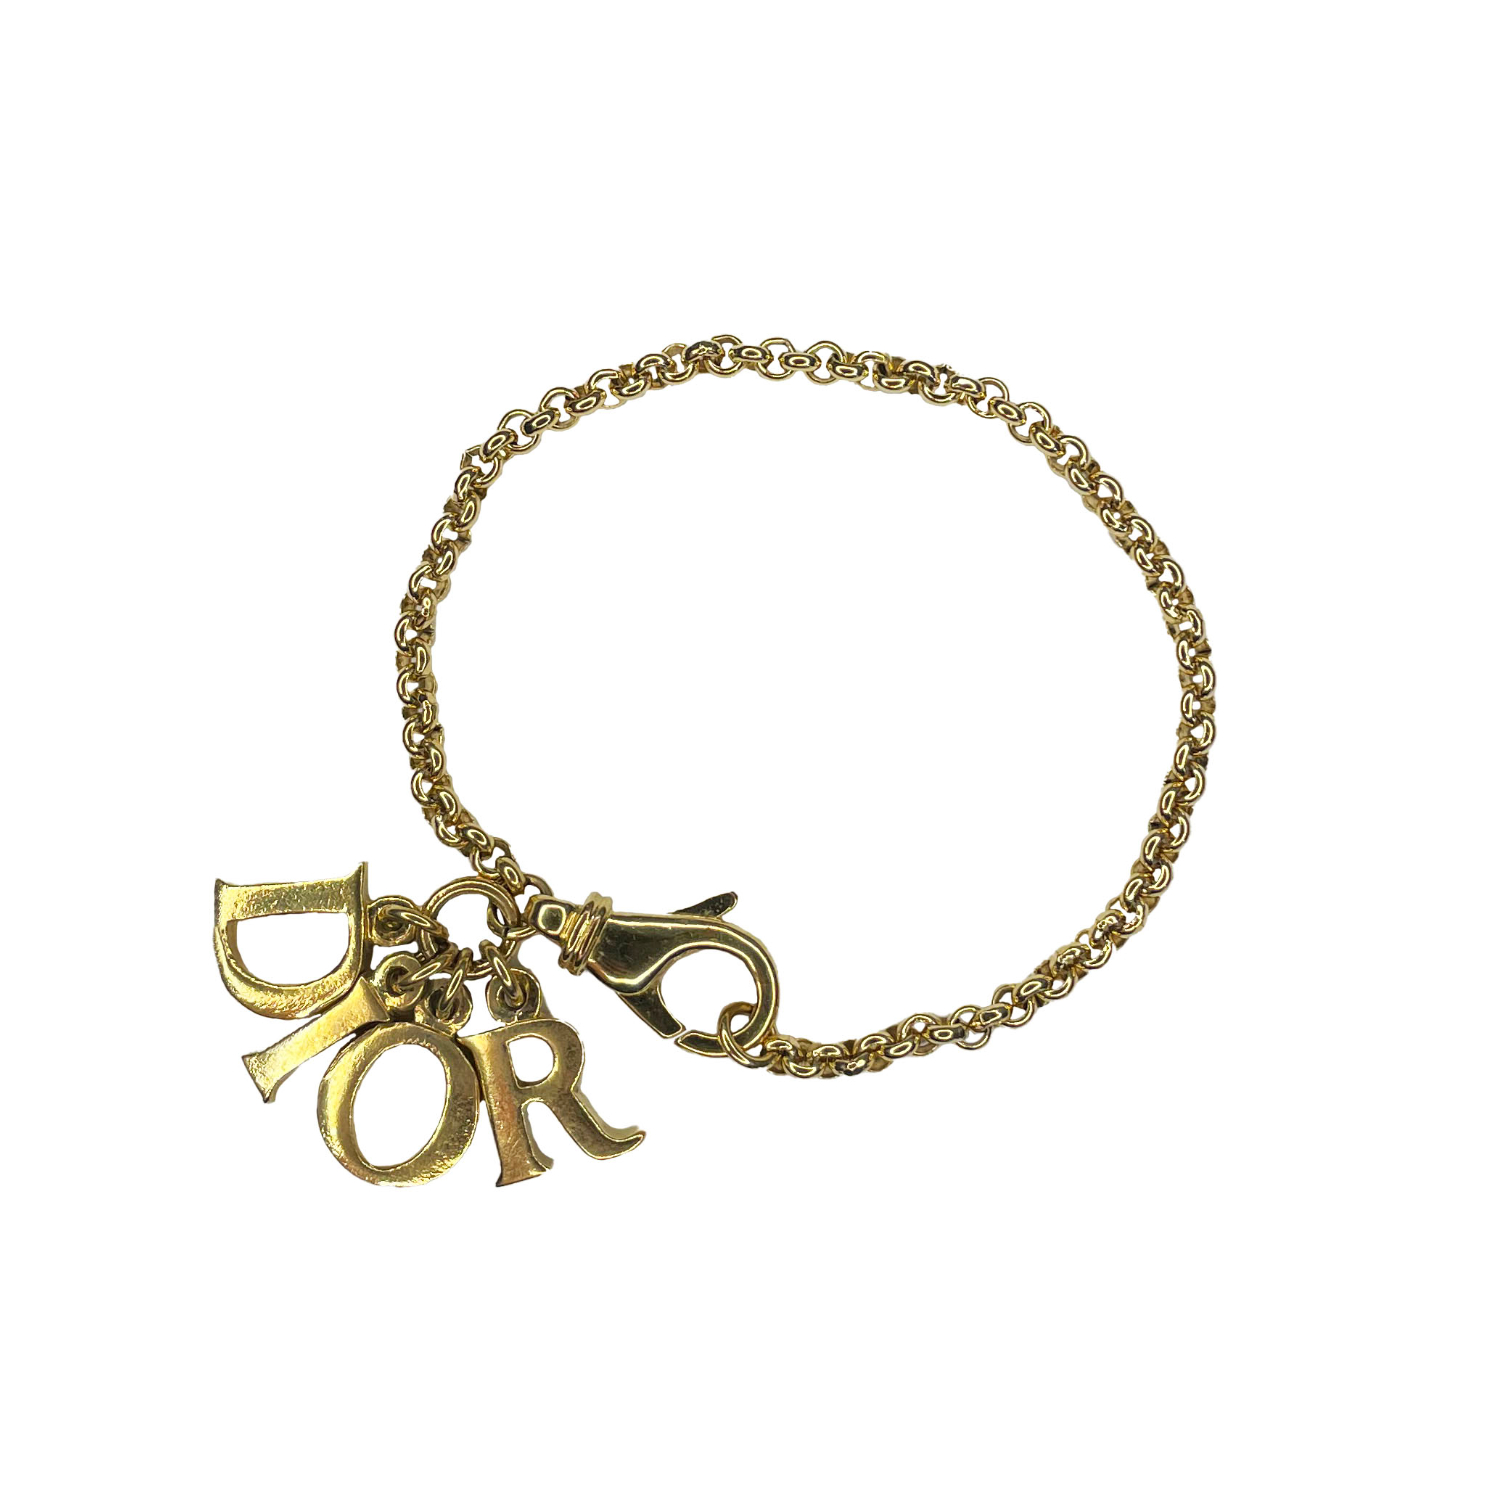 Vintage Dior Spellout Charm Bracelet in Gold | NITRYL